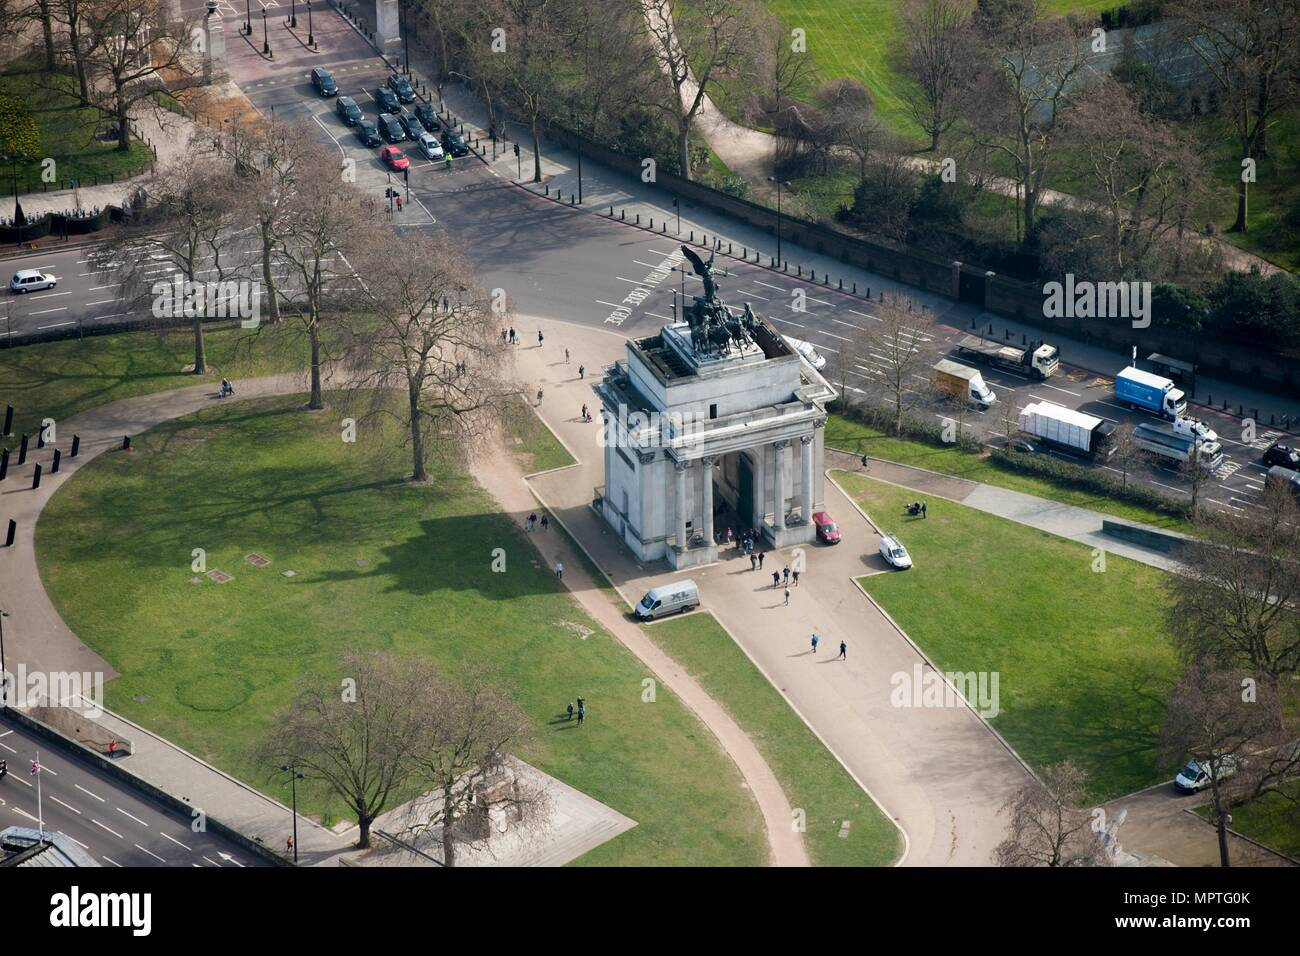 Wellington Arch, Constitution Hill, Westminster, London, c2015. Artist: Damian Grady. - Stock Image